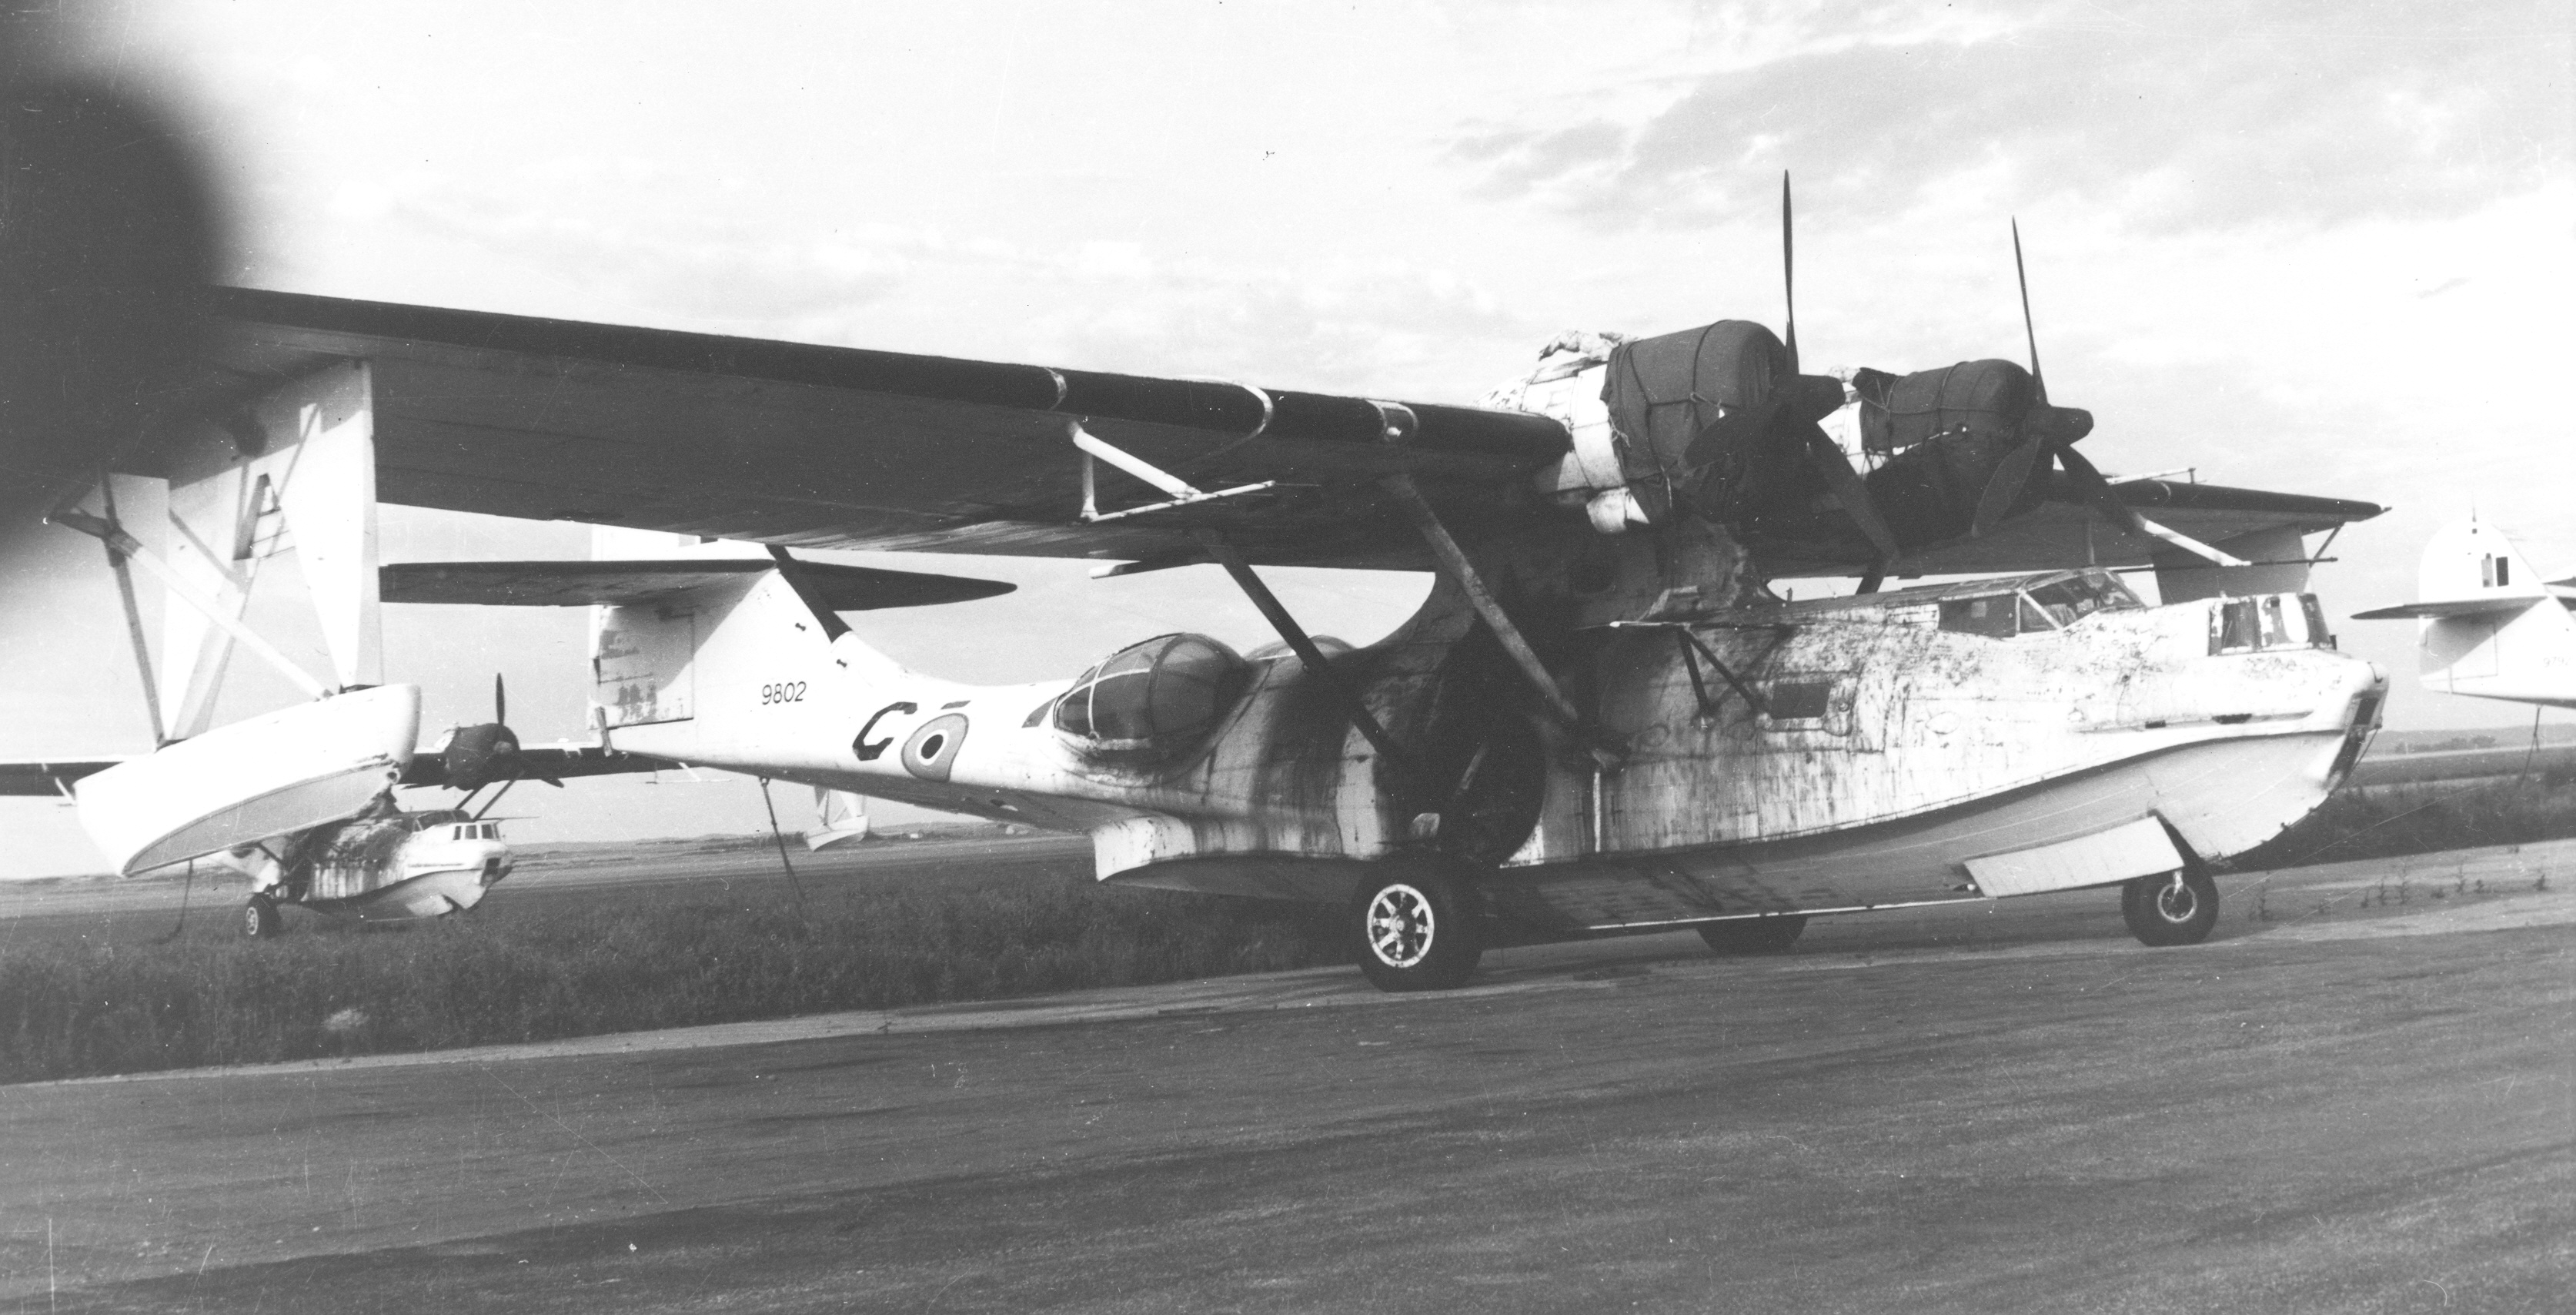 Preceded by the Consolidated Catalina into service, the Canso versions of the aircraft featured a retractable, wheeled undercarriage, which reduced the aircraft's handling difficulties. More than 700 versions of the Canso rolled off Boeing Canada and Canadian Vickers assembly lines and the RCAF was a prime user of this type. PHOTO: DND